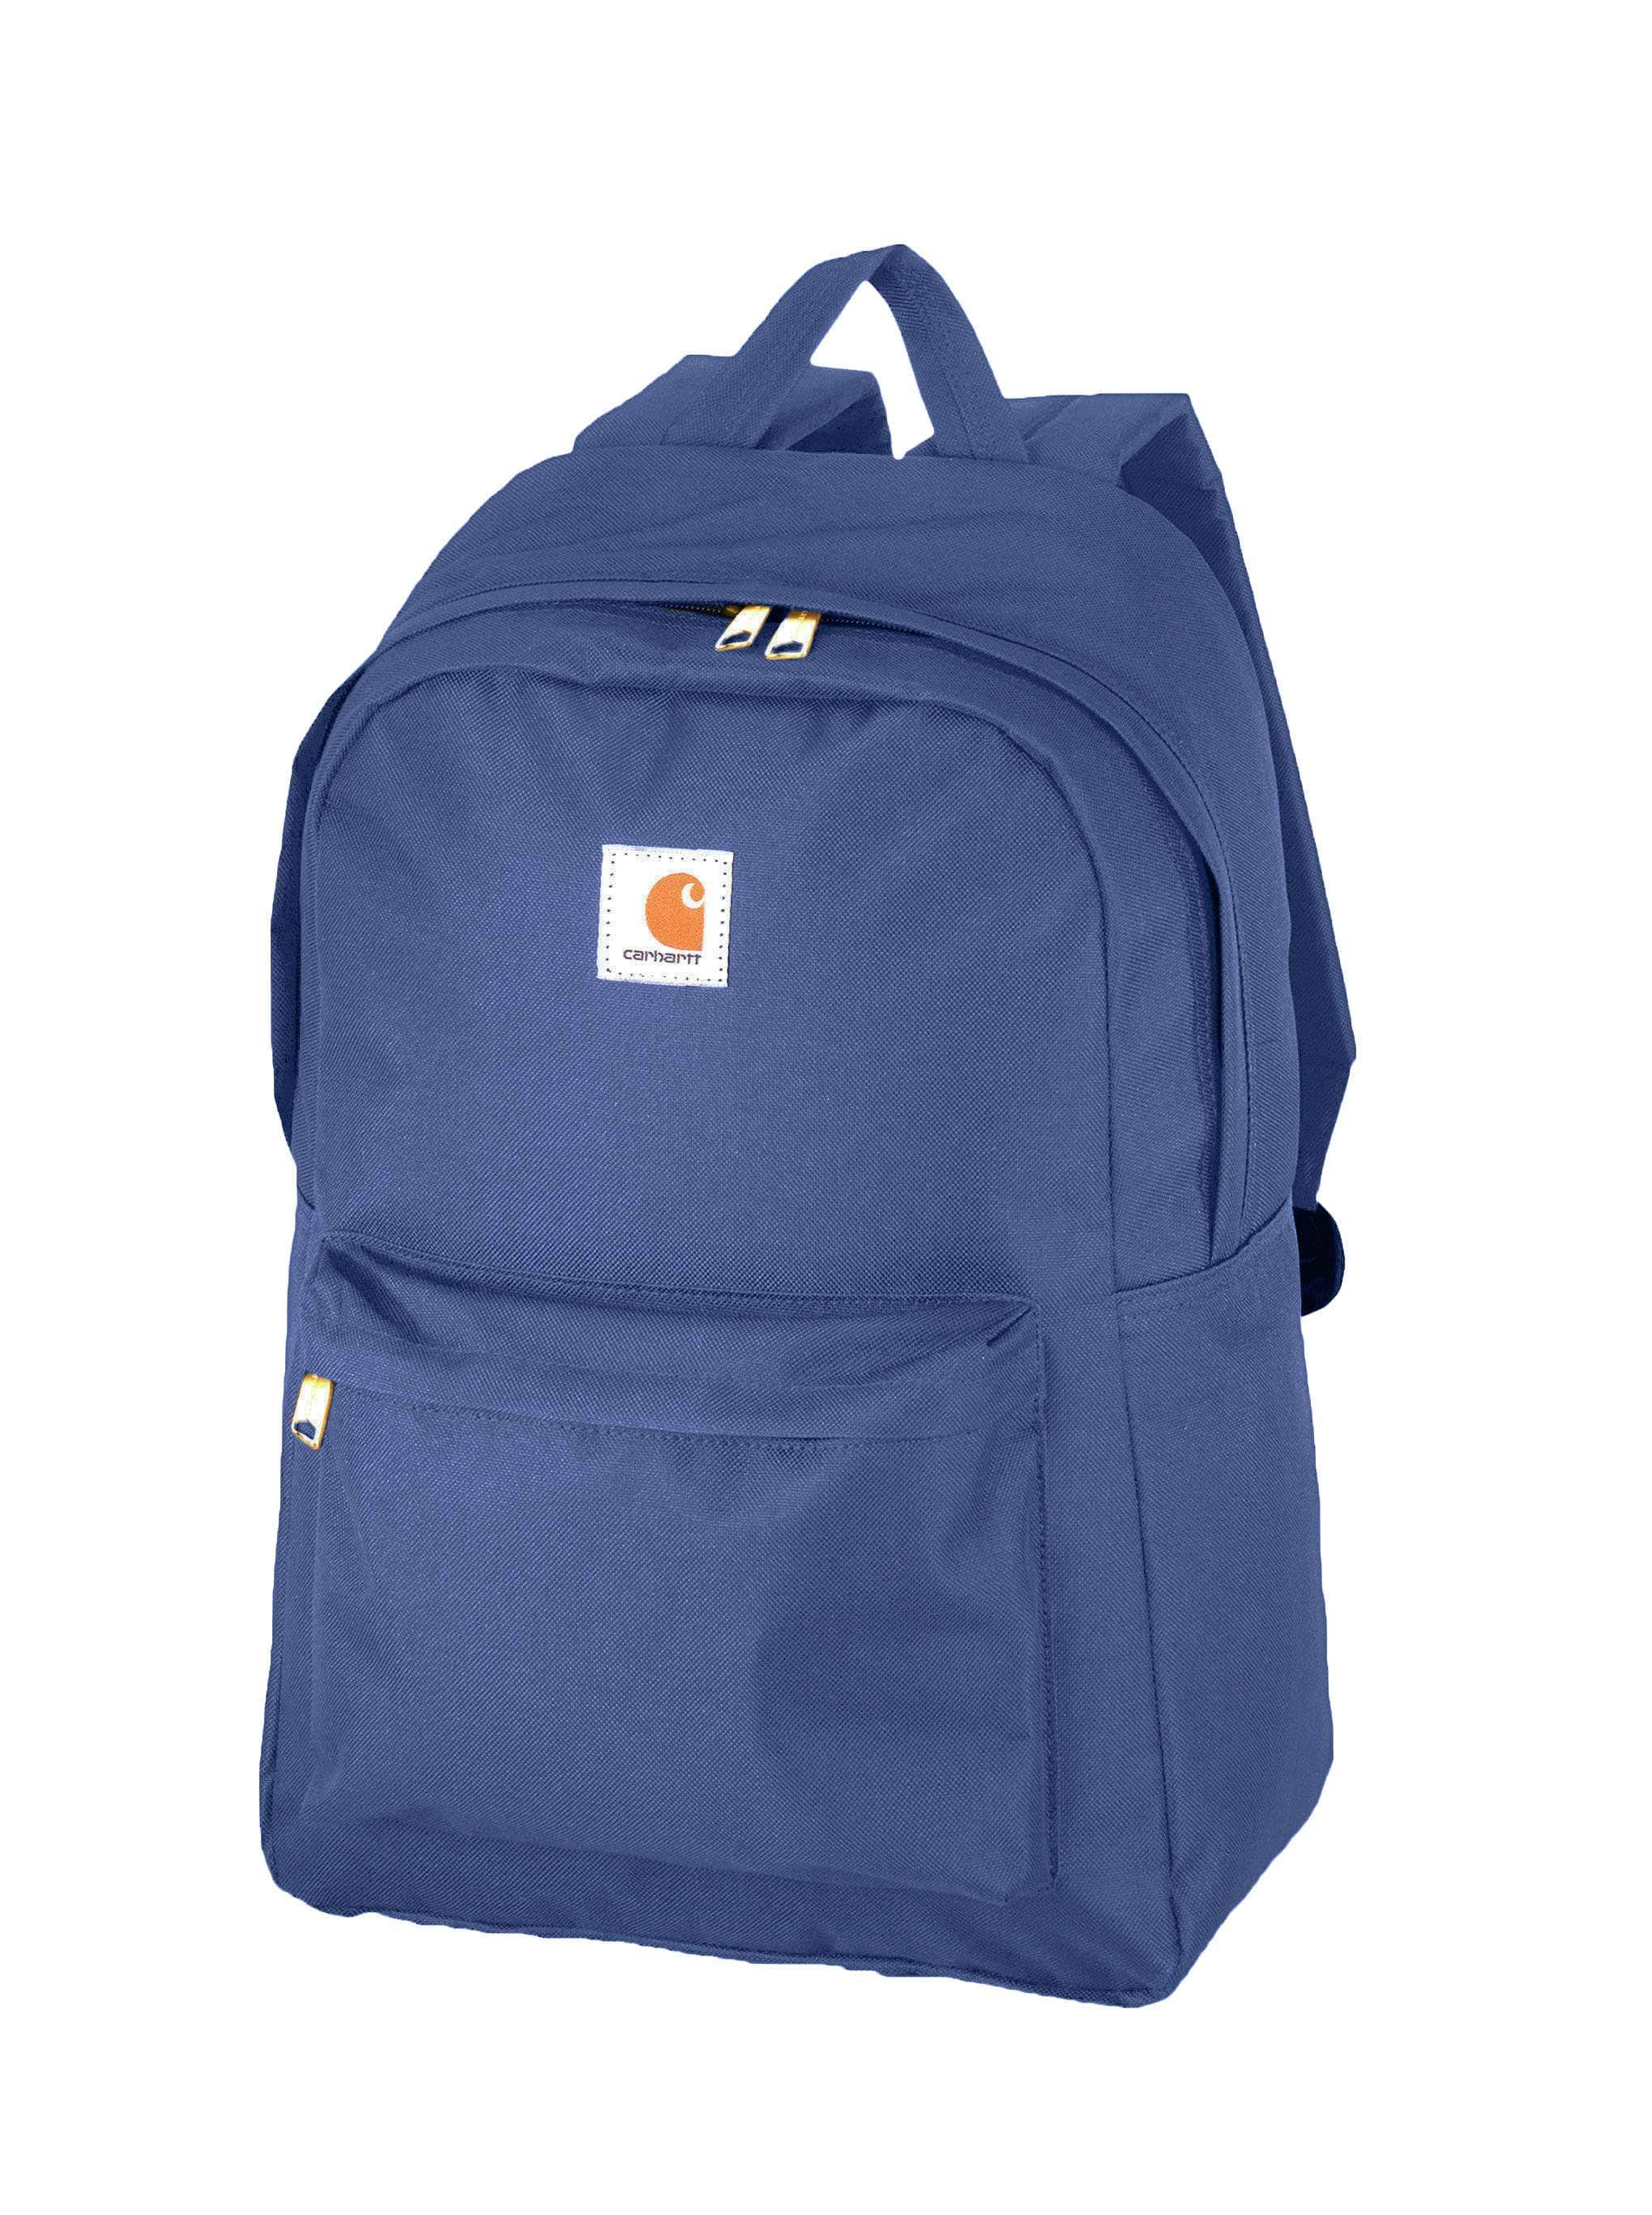 Unisex Trade Backpack 100301B